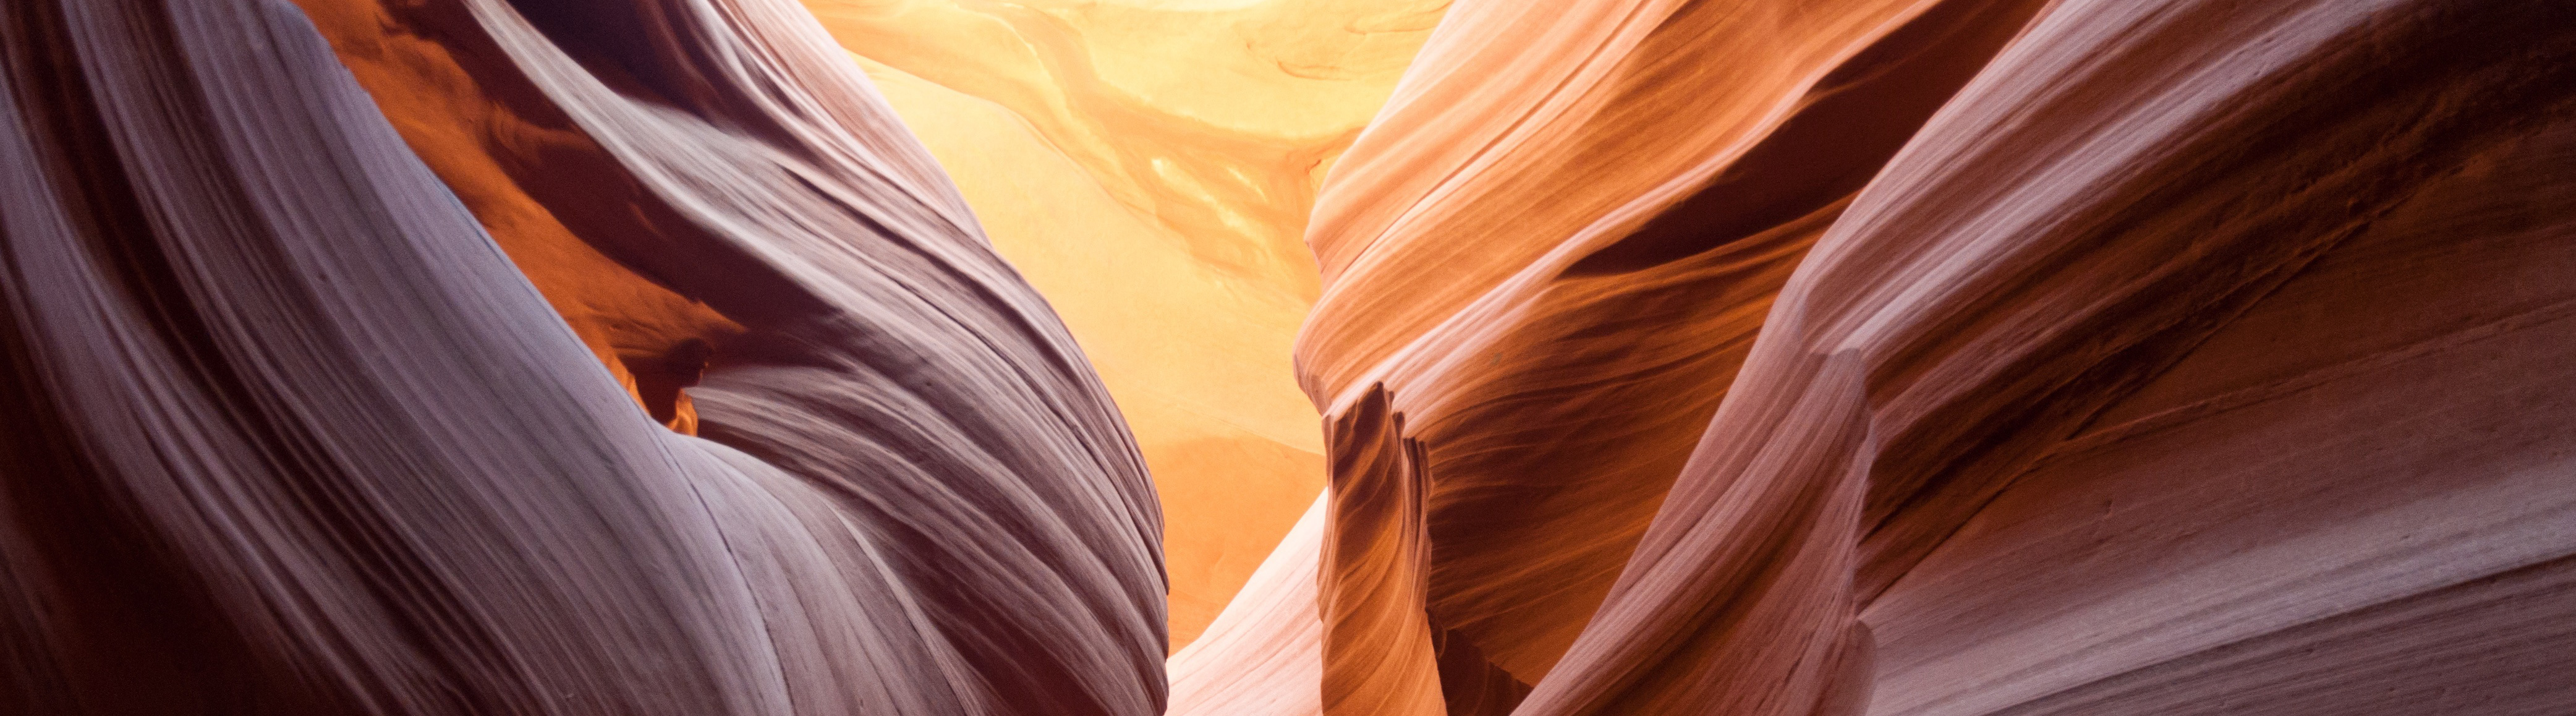 image of rocks in antelope canyon